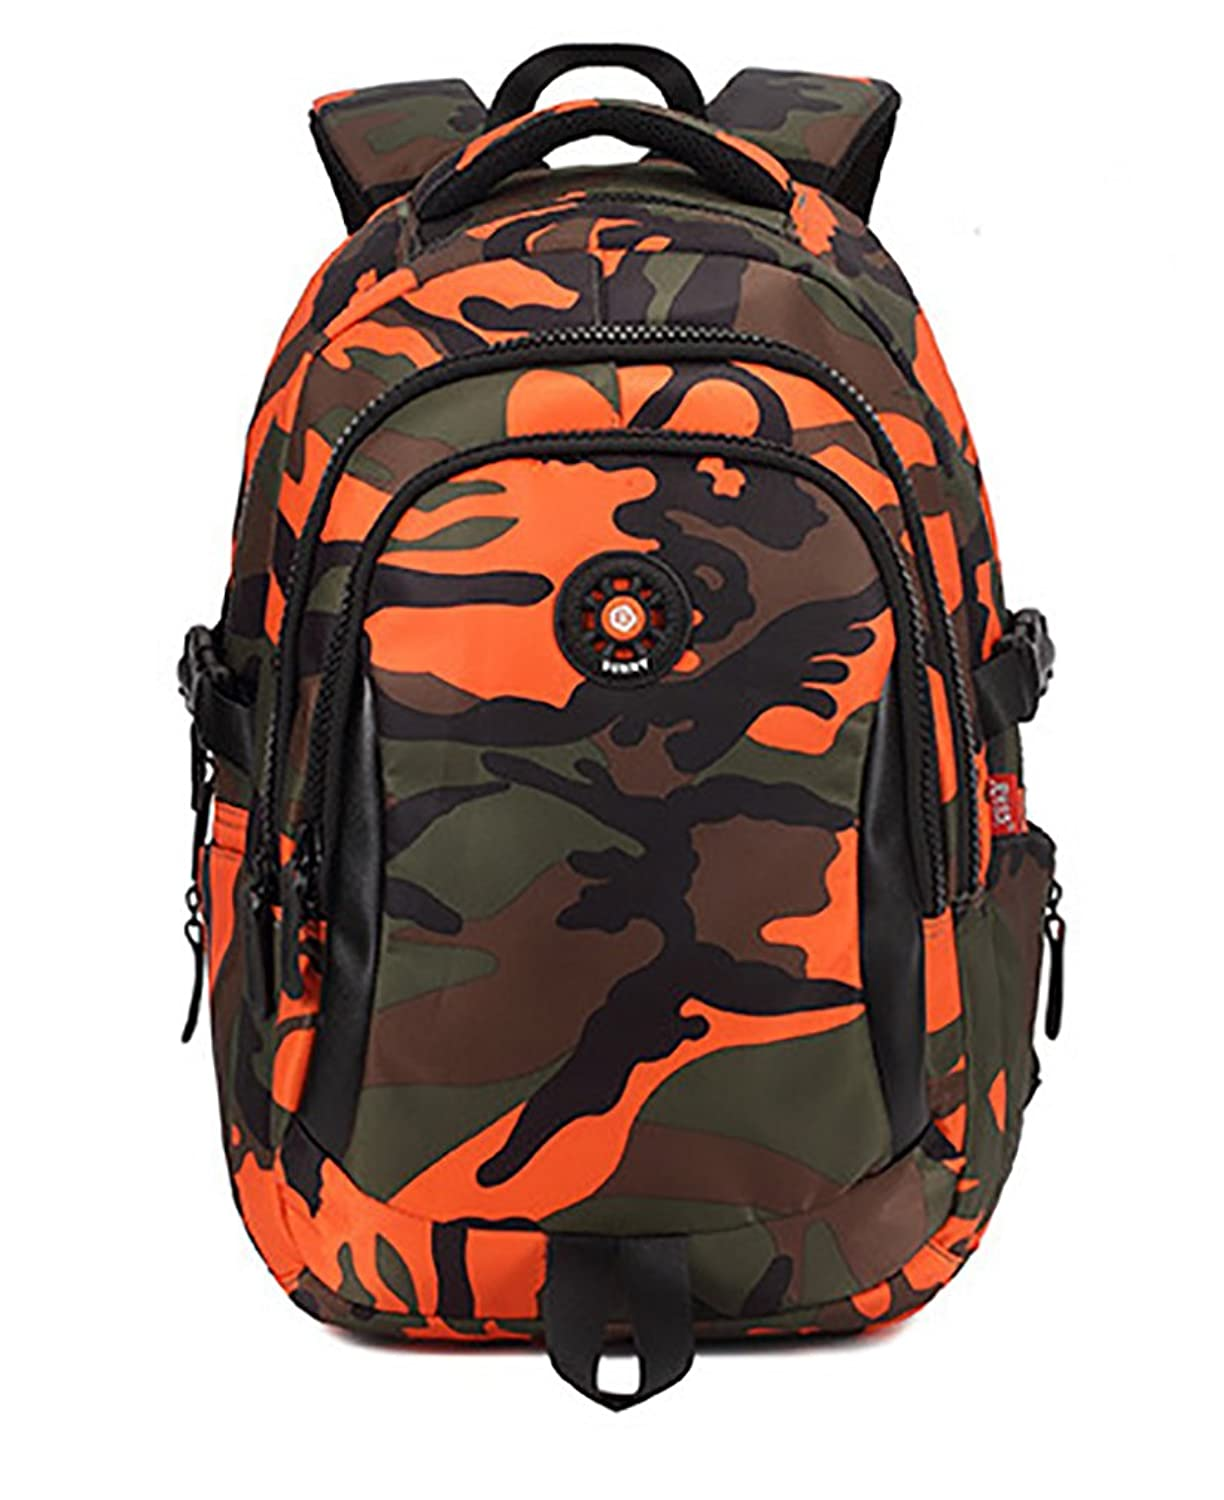 Low Cost Meetbelify School Backpack For Girls Boys Bookbags Outdoor